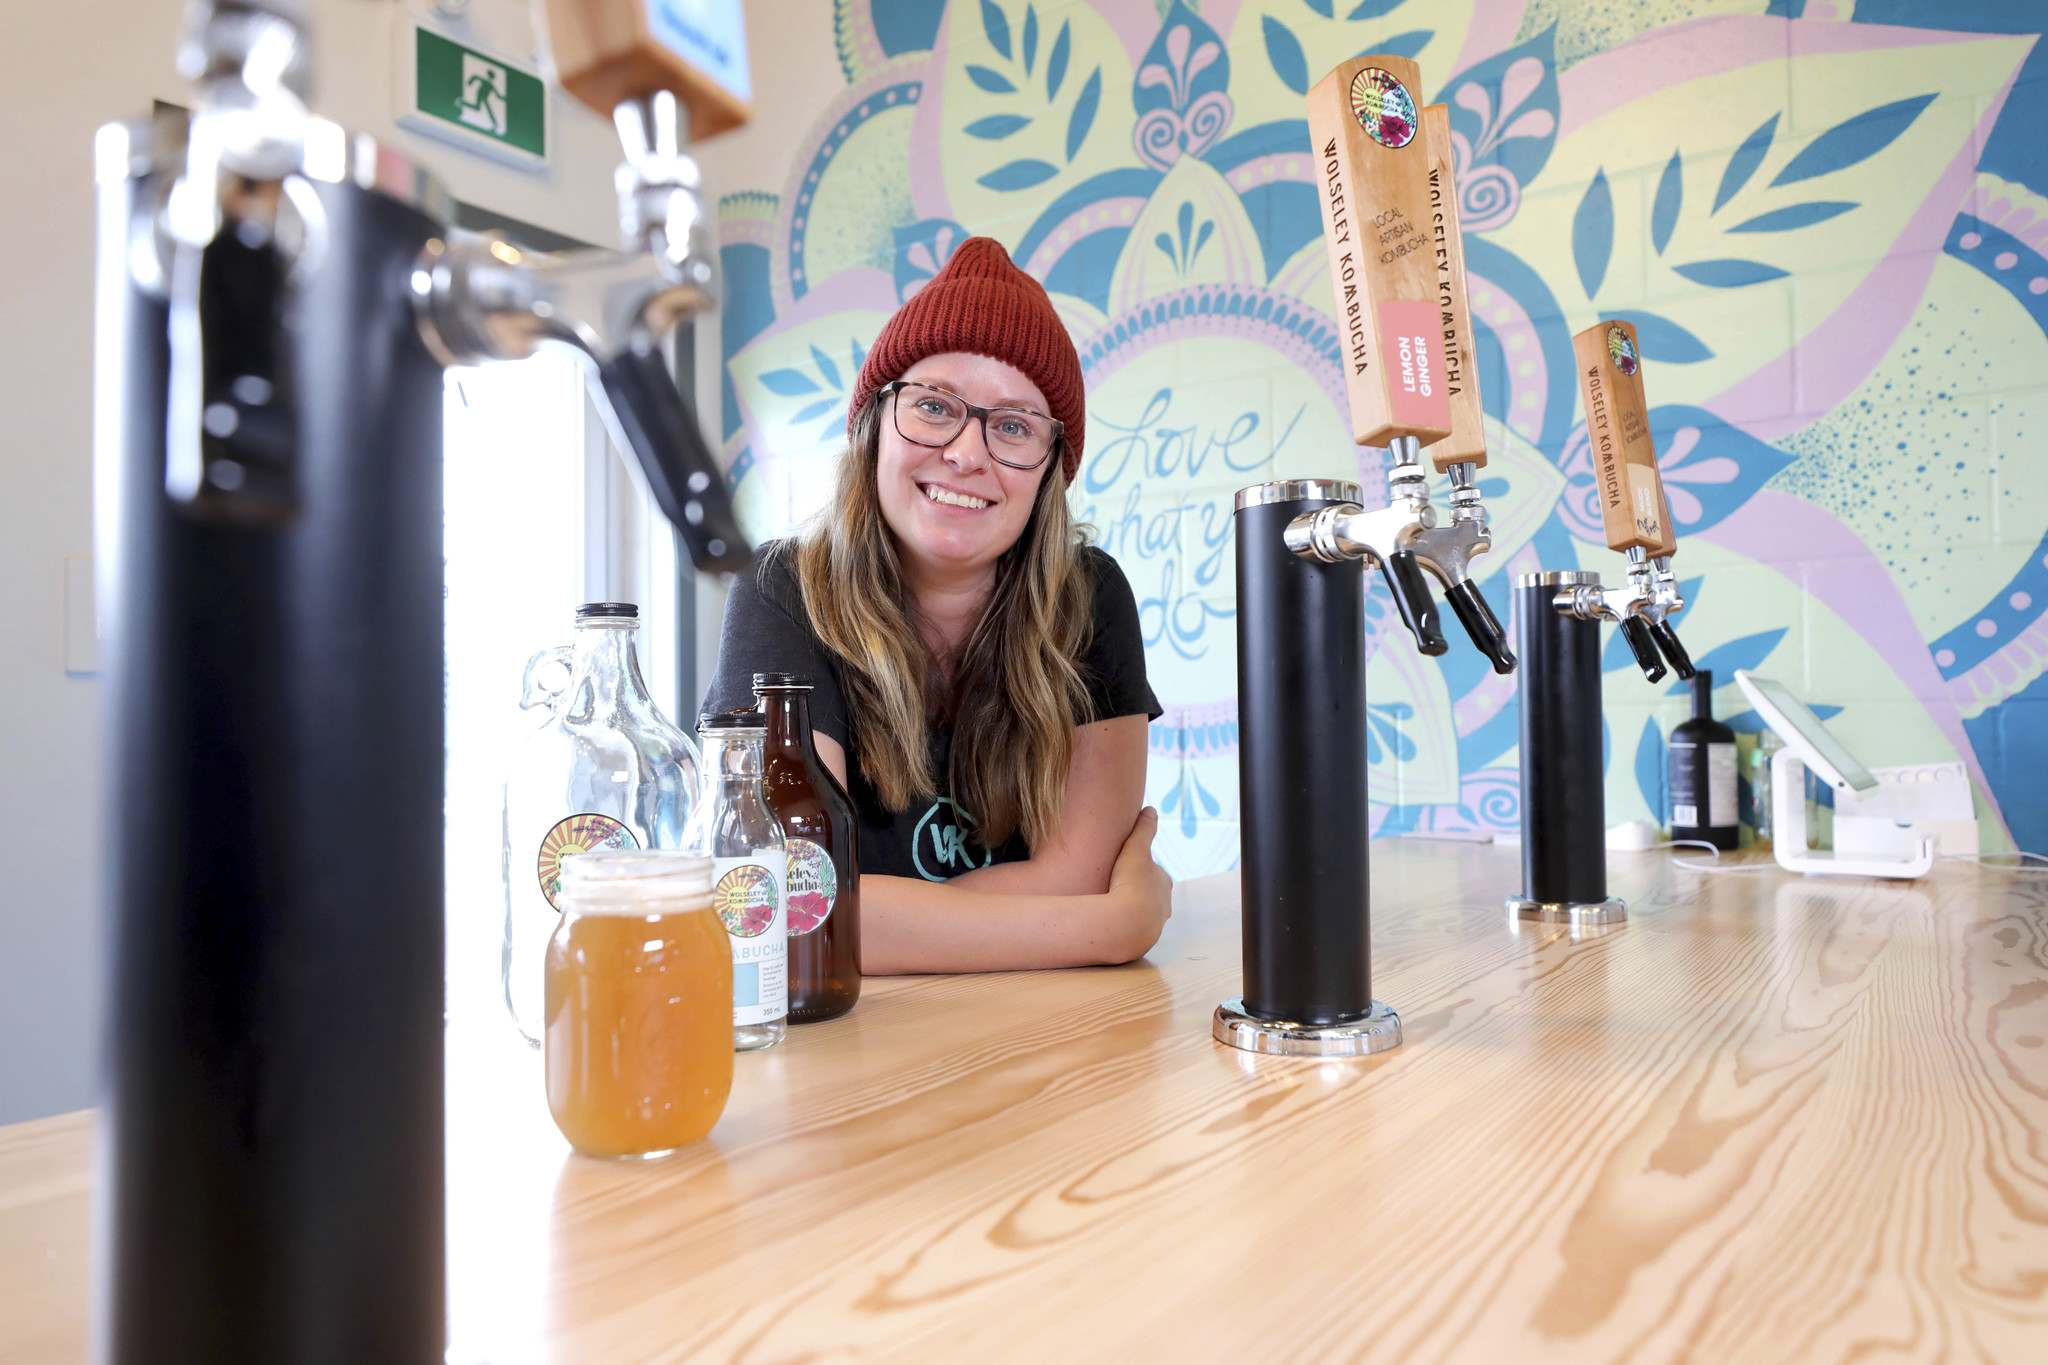 RUTH BONNEVILLE / WINNIPEG FREE PRESS</p><p>Michelle Leclair, owner and founder of Wolseley Kombucha, says if she hadn't attended Futurpreneur, 'I wouldn't have been able to see the brewing success and growth I've seen since then.'</p>